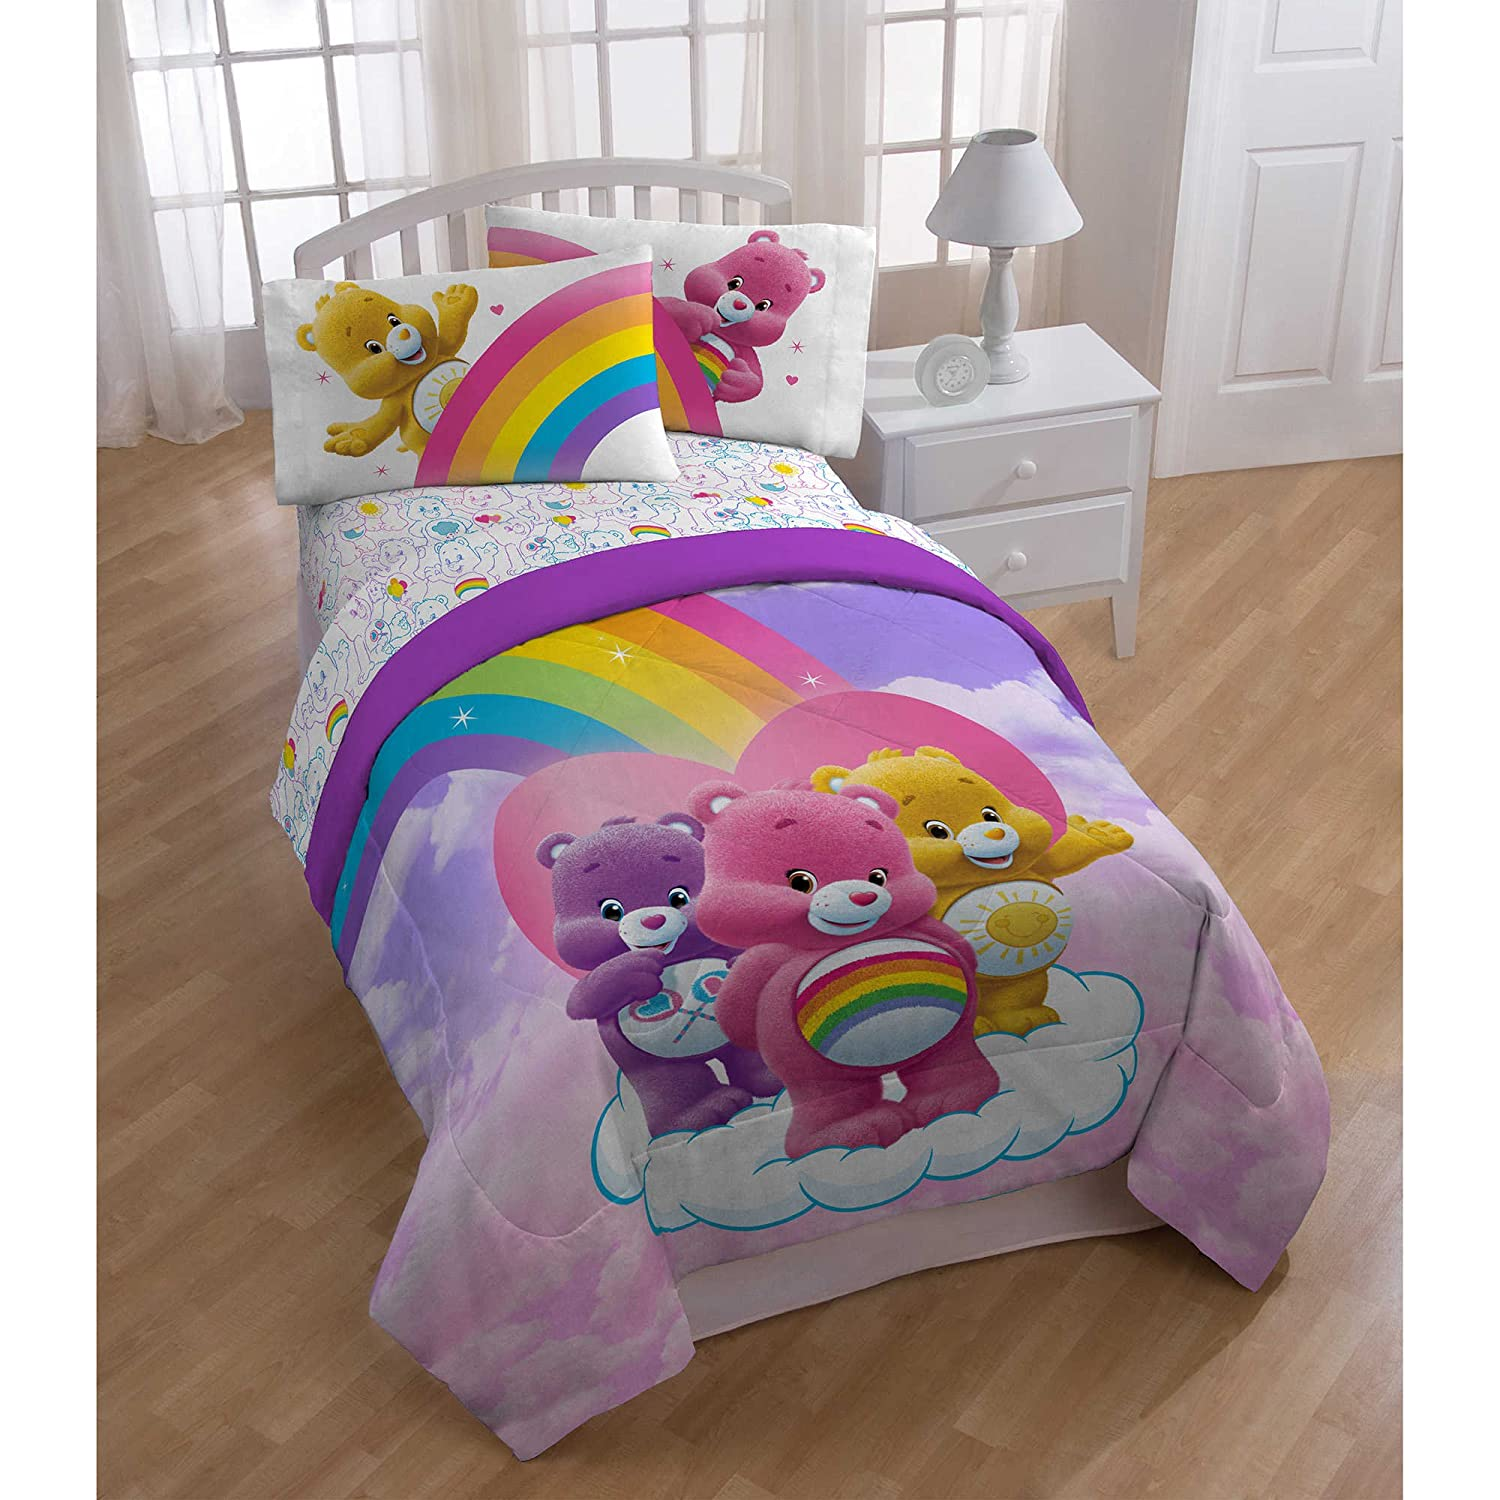 Care Bears Twin / Full Comforter w/ Plush Reverse by American Greeting Jay Franco